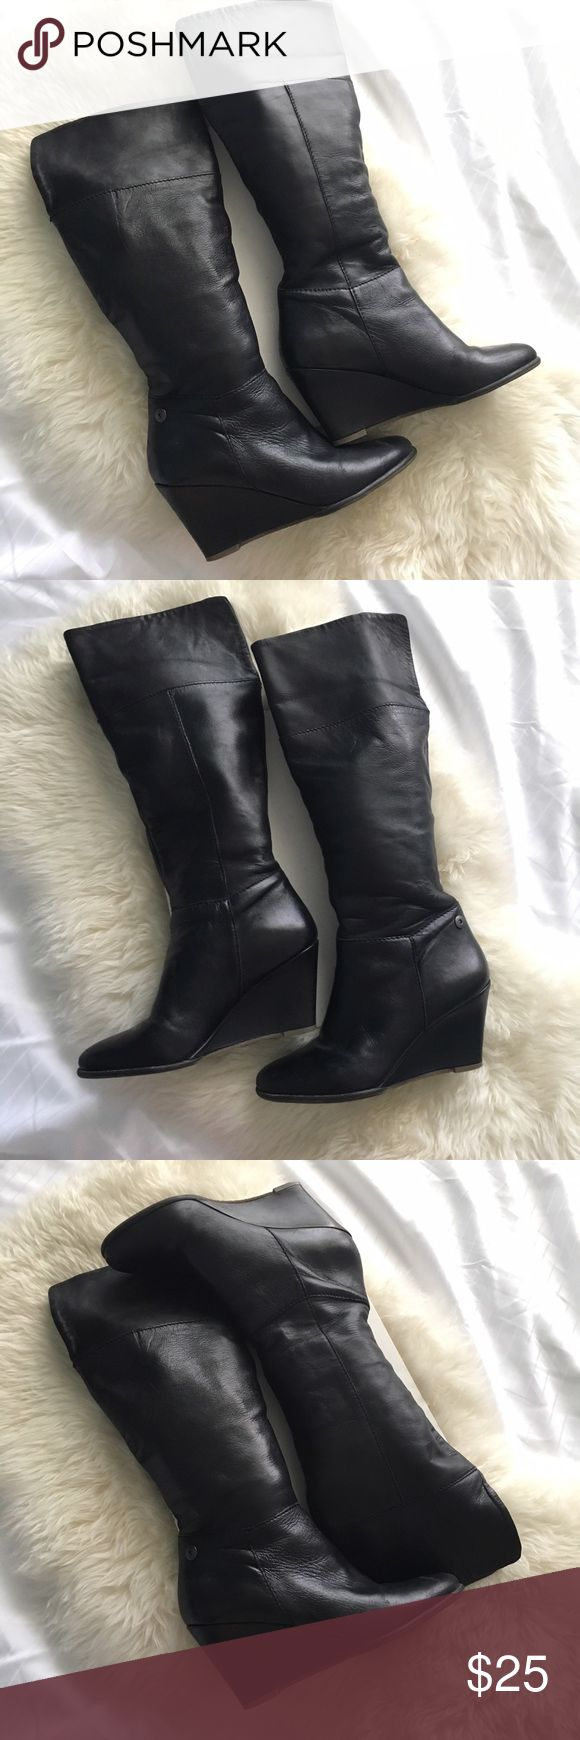 Knee Length Black Boots Steven By Steve Madden Black knee length boots. Actual brand is Steven By Steve Madden. Super comfortable! Worn and in good condition! Heel height is approx 3 inches. From the top of the heel to the top of the boot, the length is approx 13 inches (as marked with blue in pic #8). The width of the boot as measured where the seam is at (marked with red in pic #8) is approx 6 inches. Left boot is picture #7. Right boot is picture #8. Steve Madden Shoes Heeled Boots